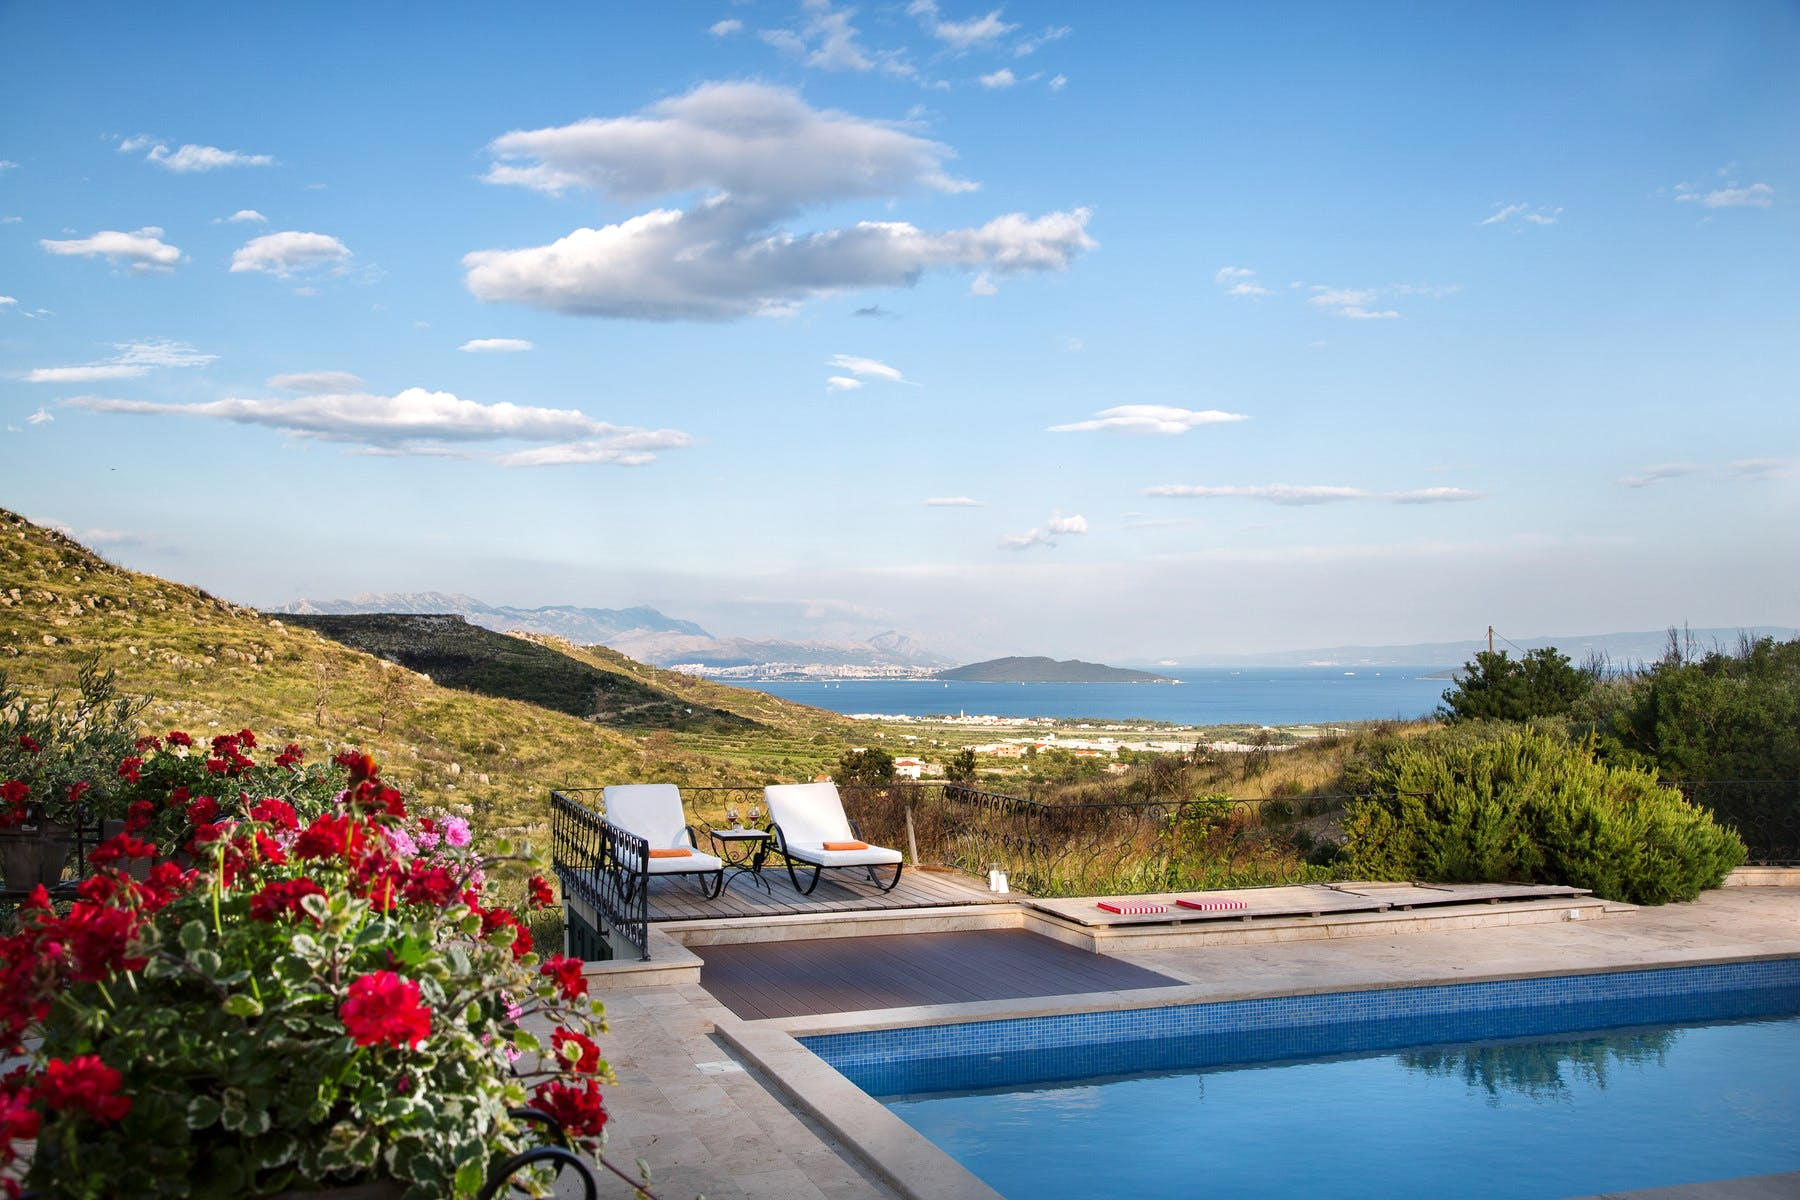 Stunning view from the pool of the luxury estate near Trogir for sale